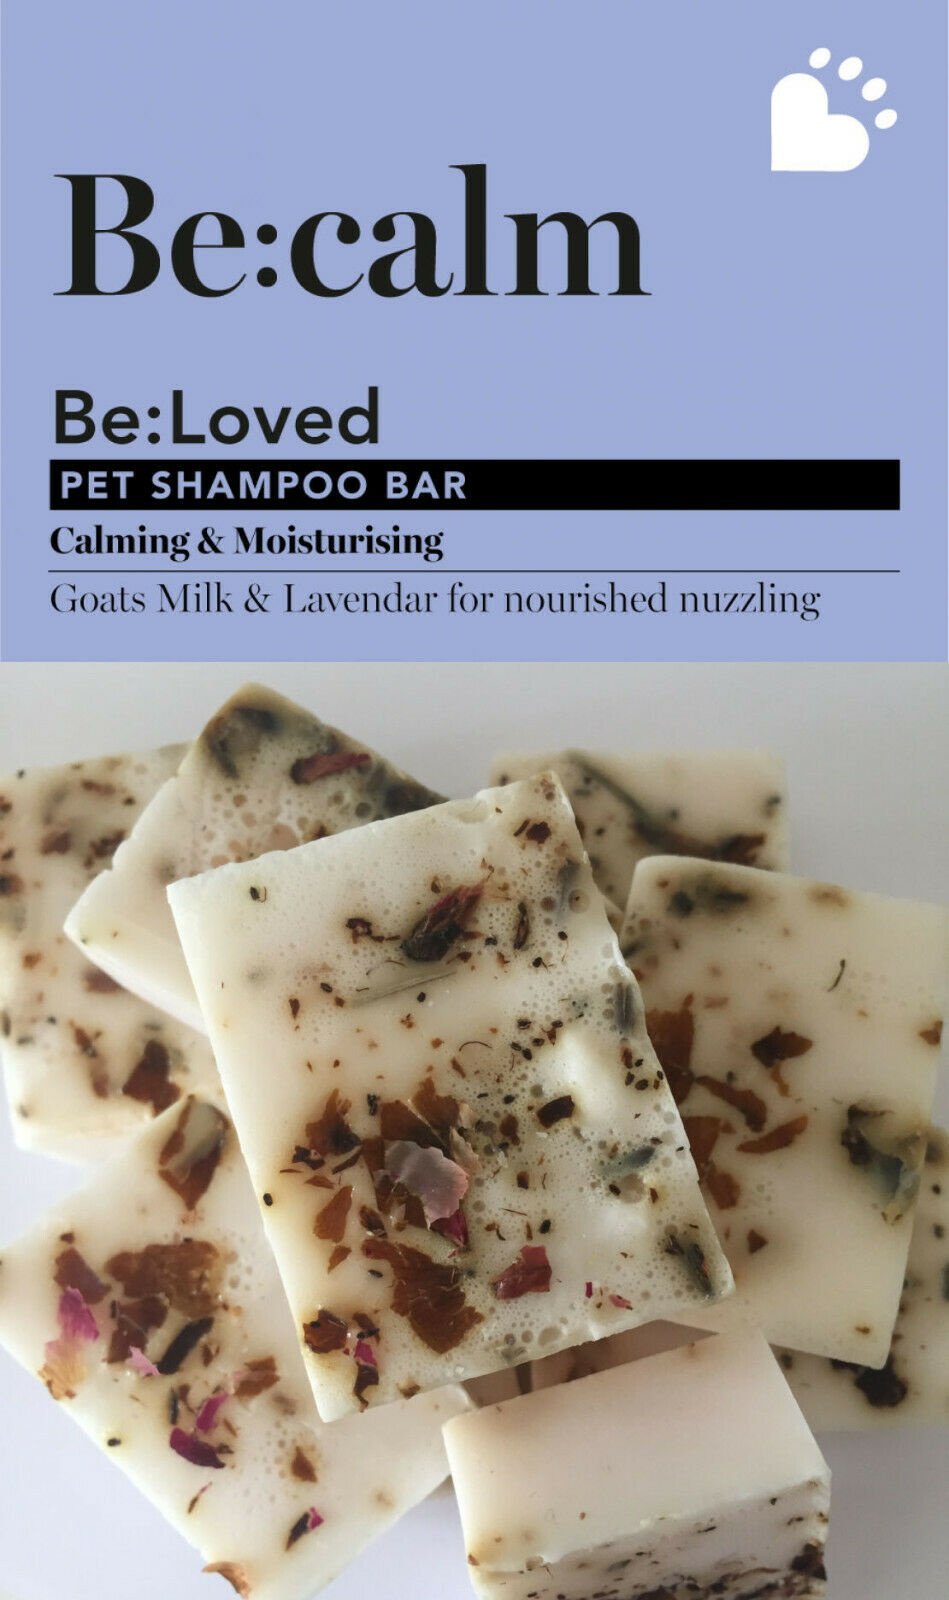 Be:Loved Shampoo Bar